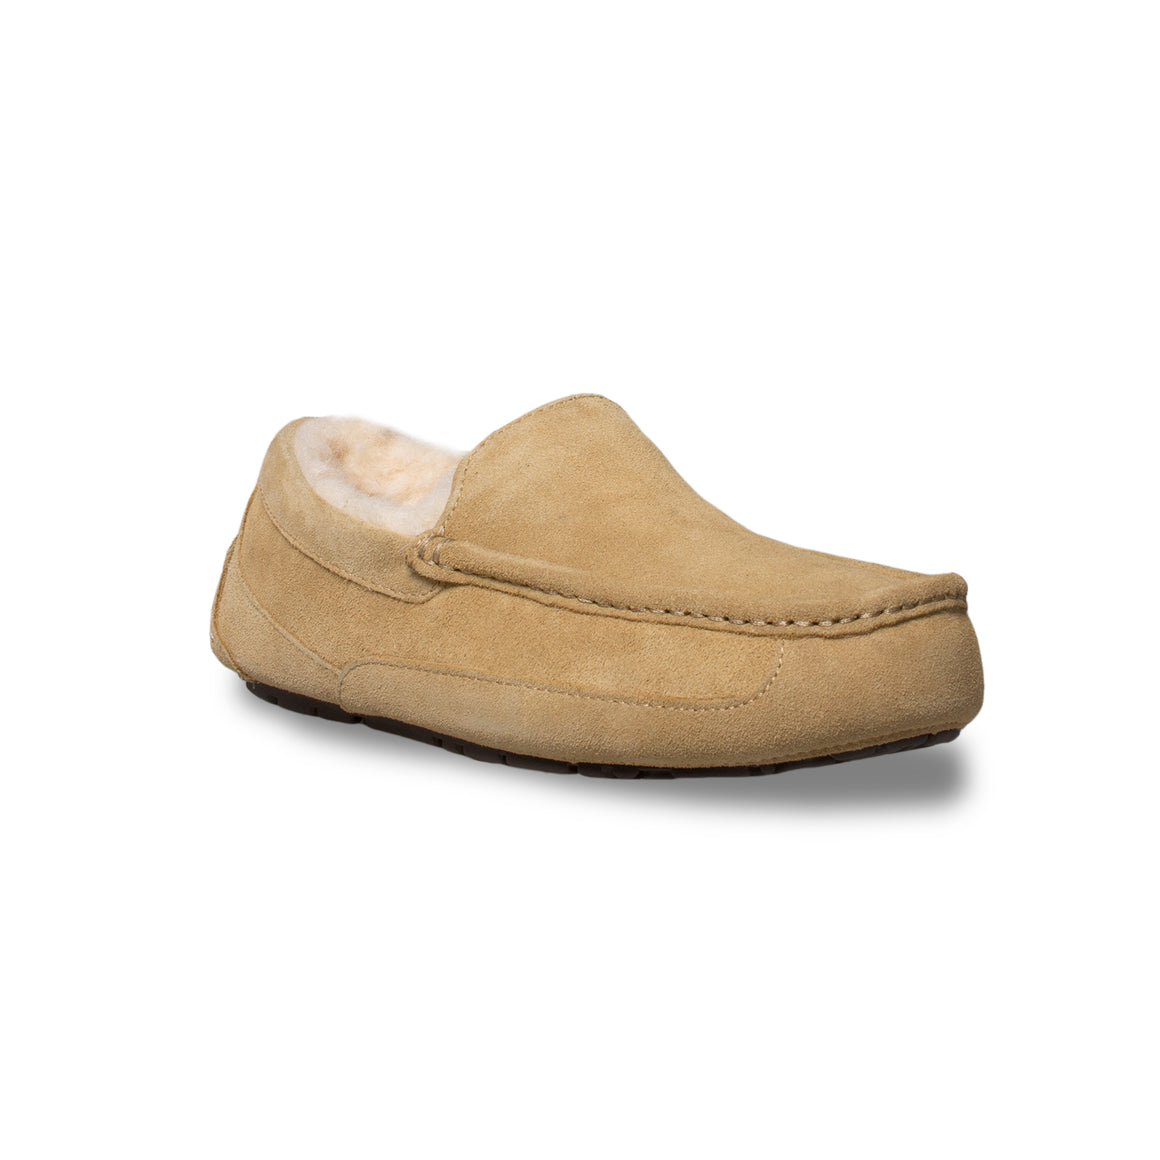 UGG Ascot Military Sand Slippers - Men's